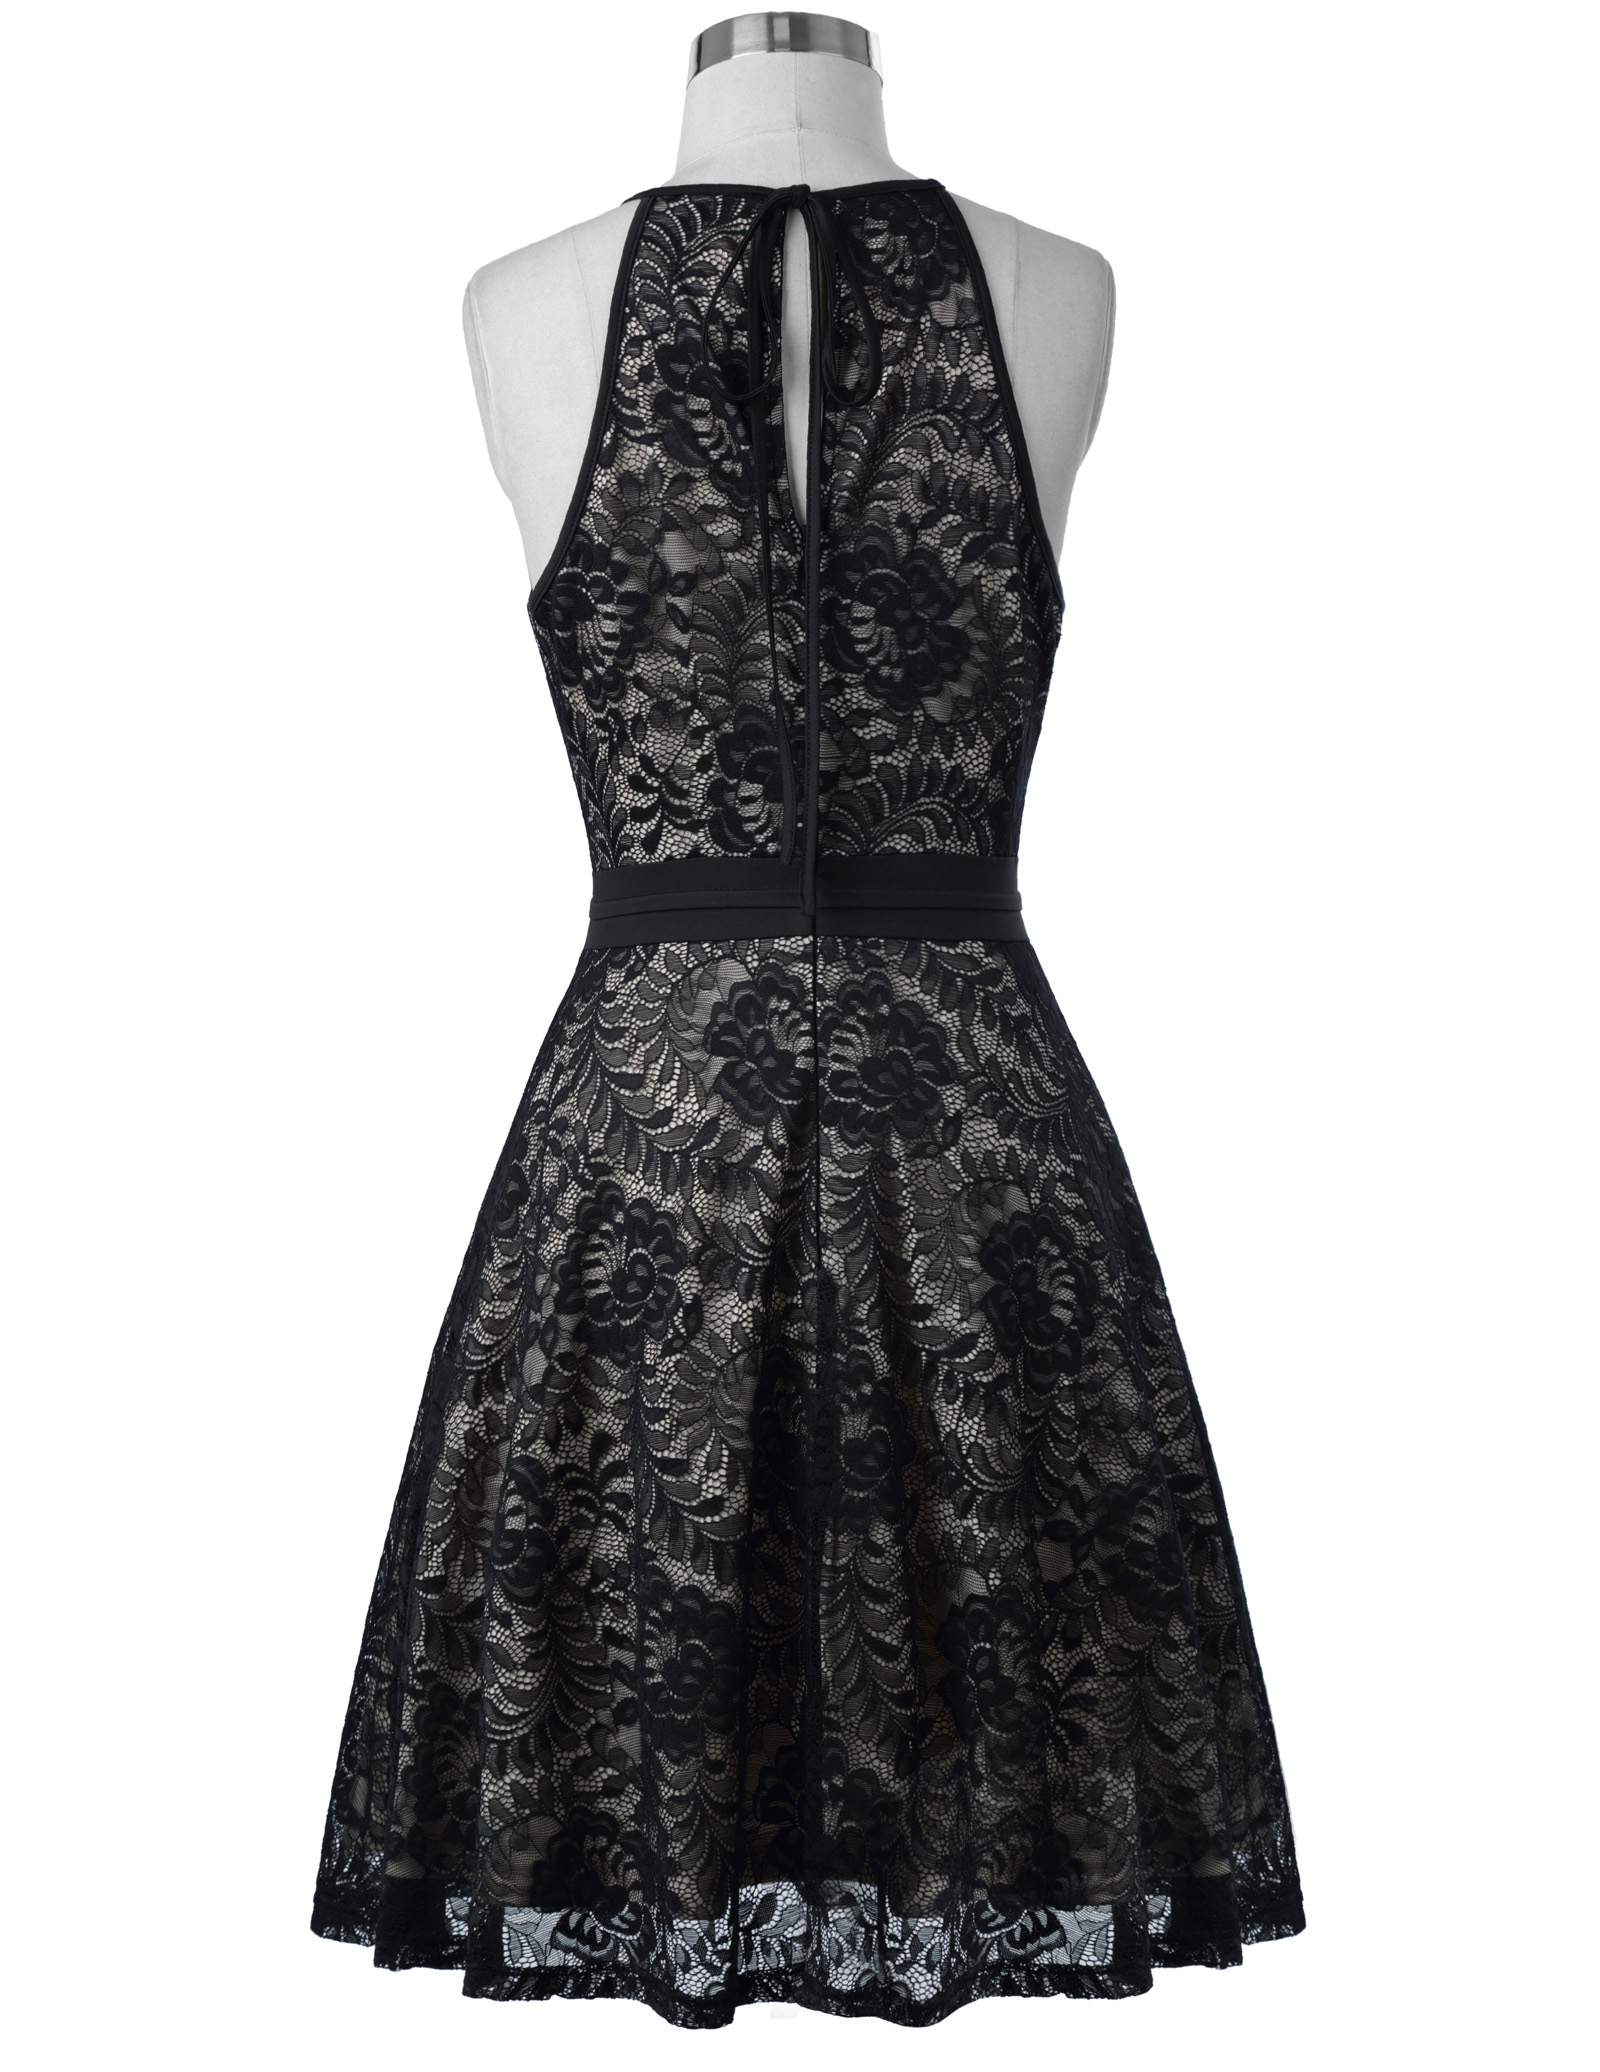 Vintage Black Lace Sleeveless Knee-Length Dress 7